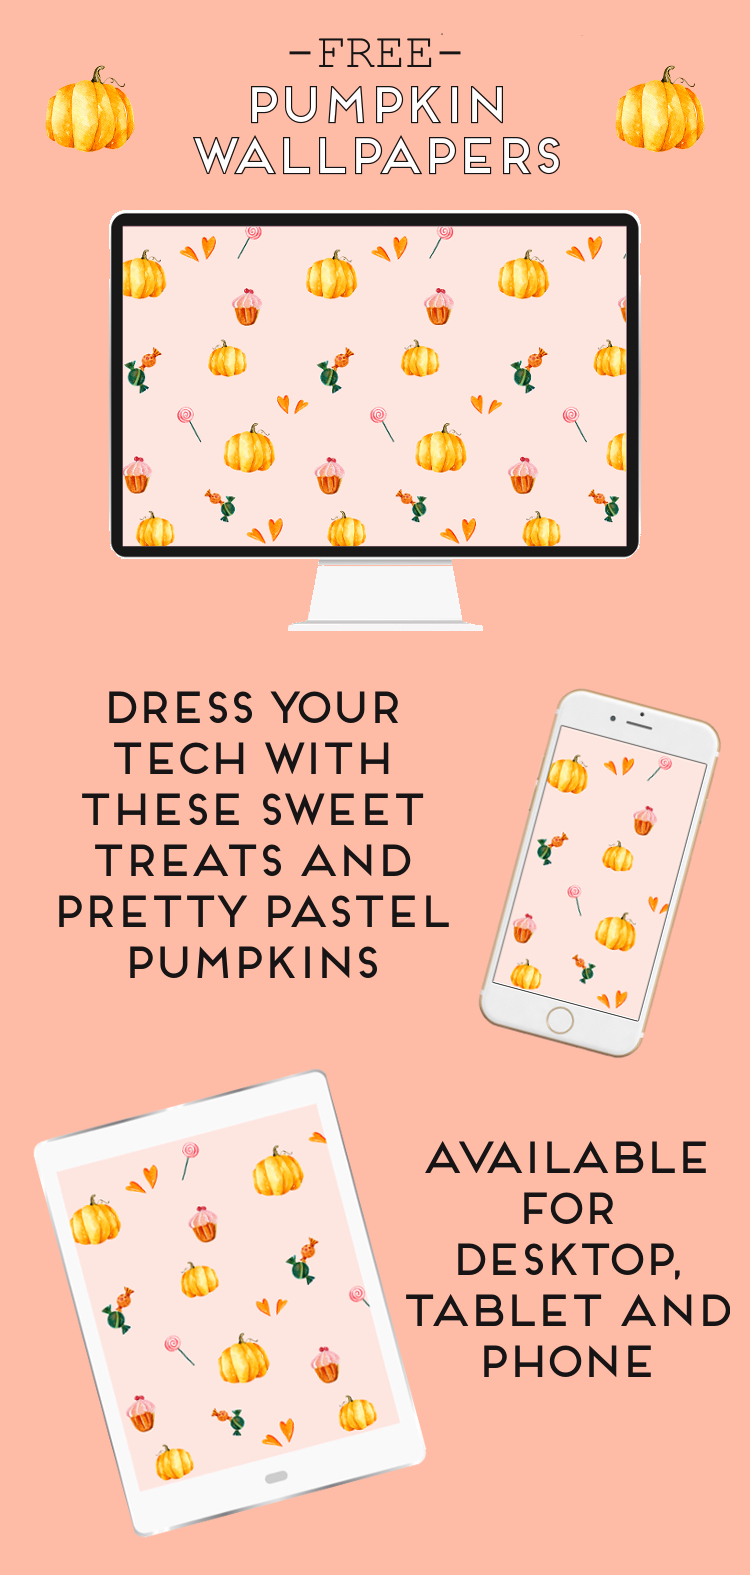 Free pretty pastel pumpkins and sweet treats Halloween desktop wallpaper #desktopwallpaper #freedownload #freewallpaper #halloween #prettypastels #cupcake #phonewallpaper #gatheringbeauty